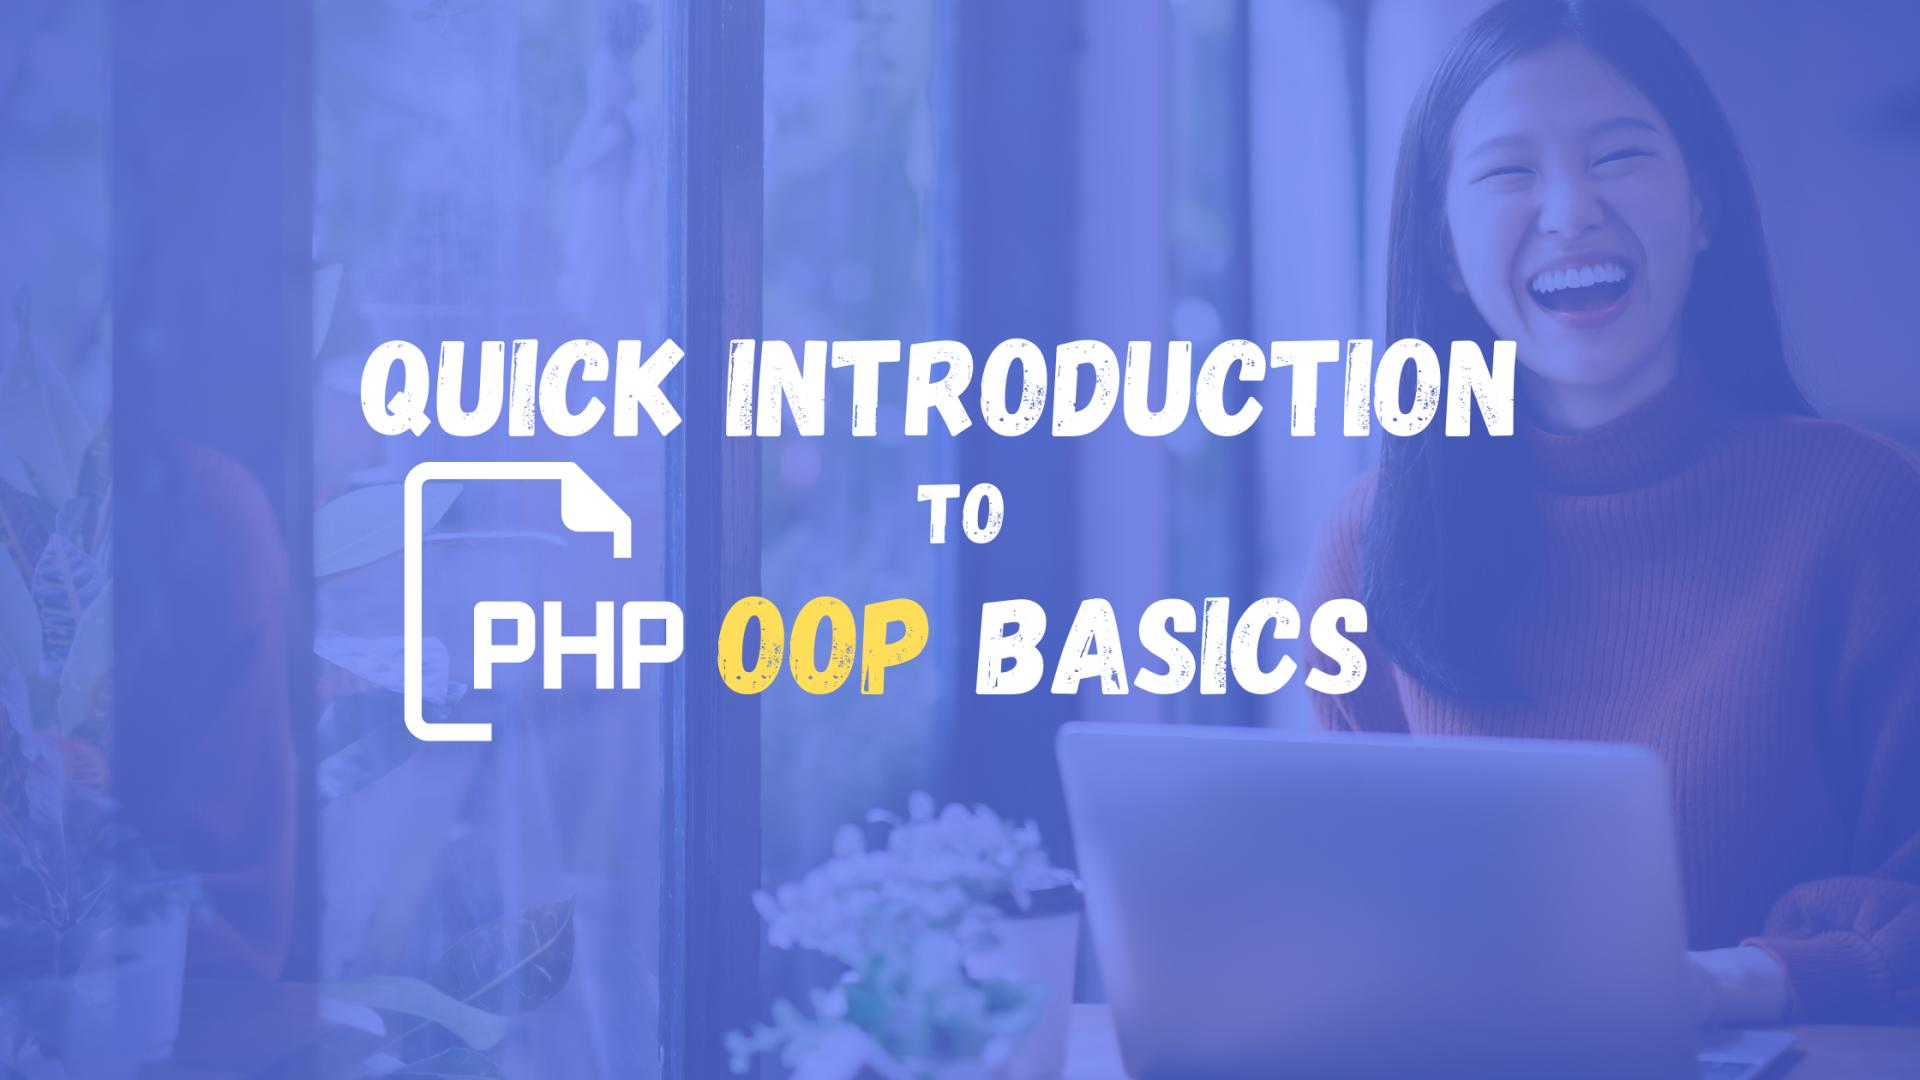 Quick Introduction to PHP OOP Basics Crash Course